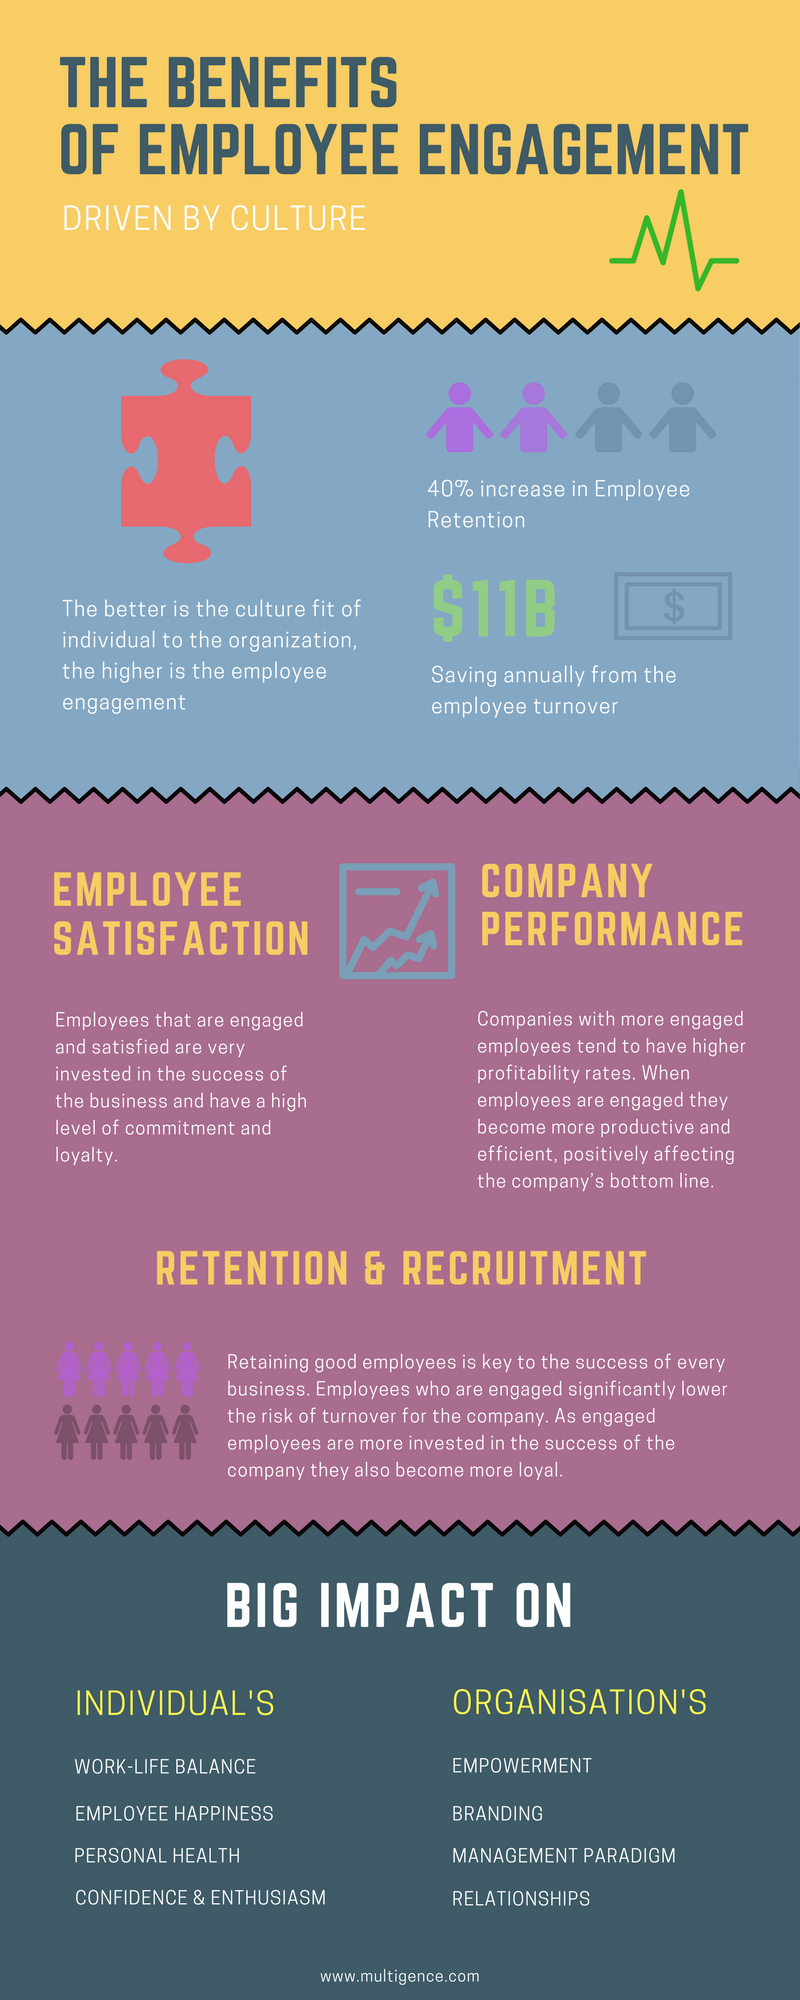 Employee Engagement Driven by Culture in the Infographics from Multigence